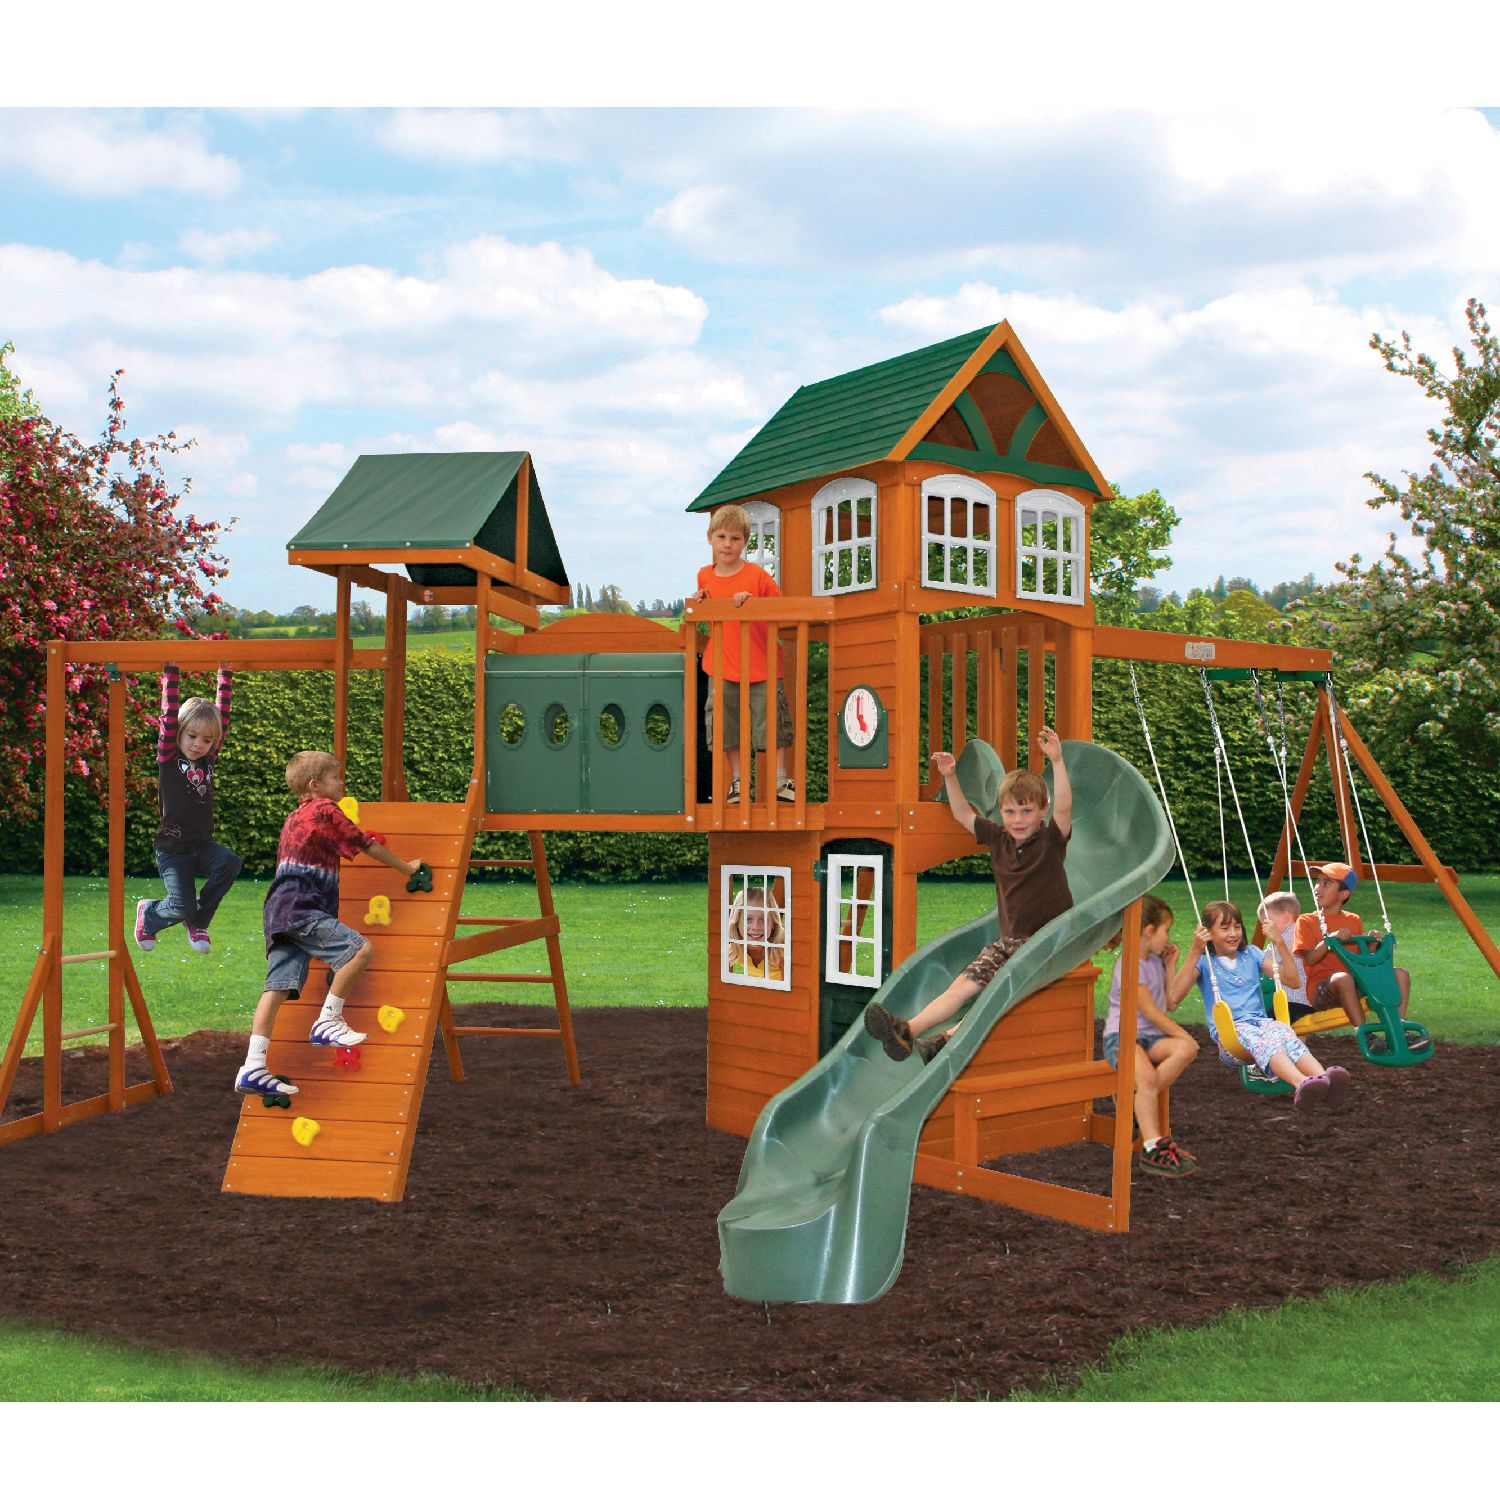 Hillcrest Wooden Play Set By Big Backyard Only 799 00 At